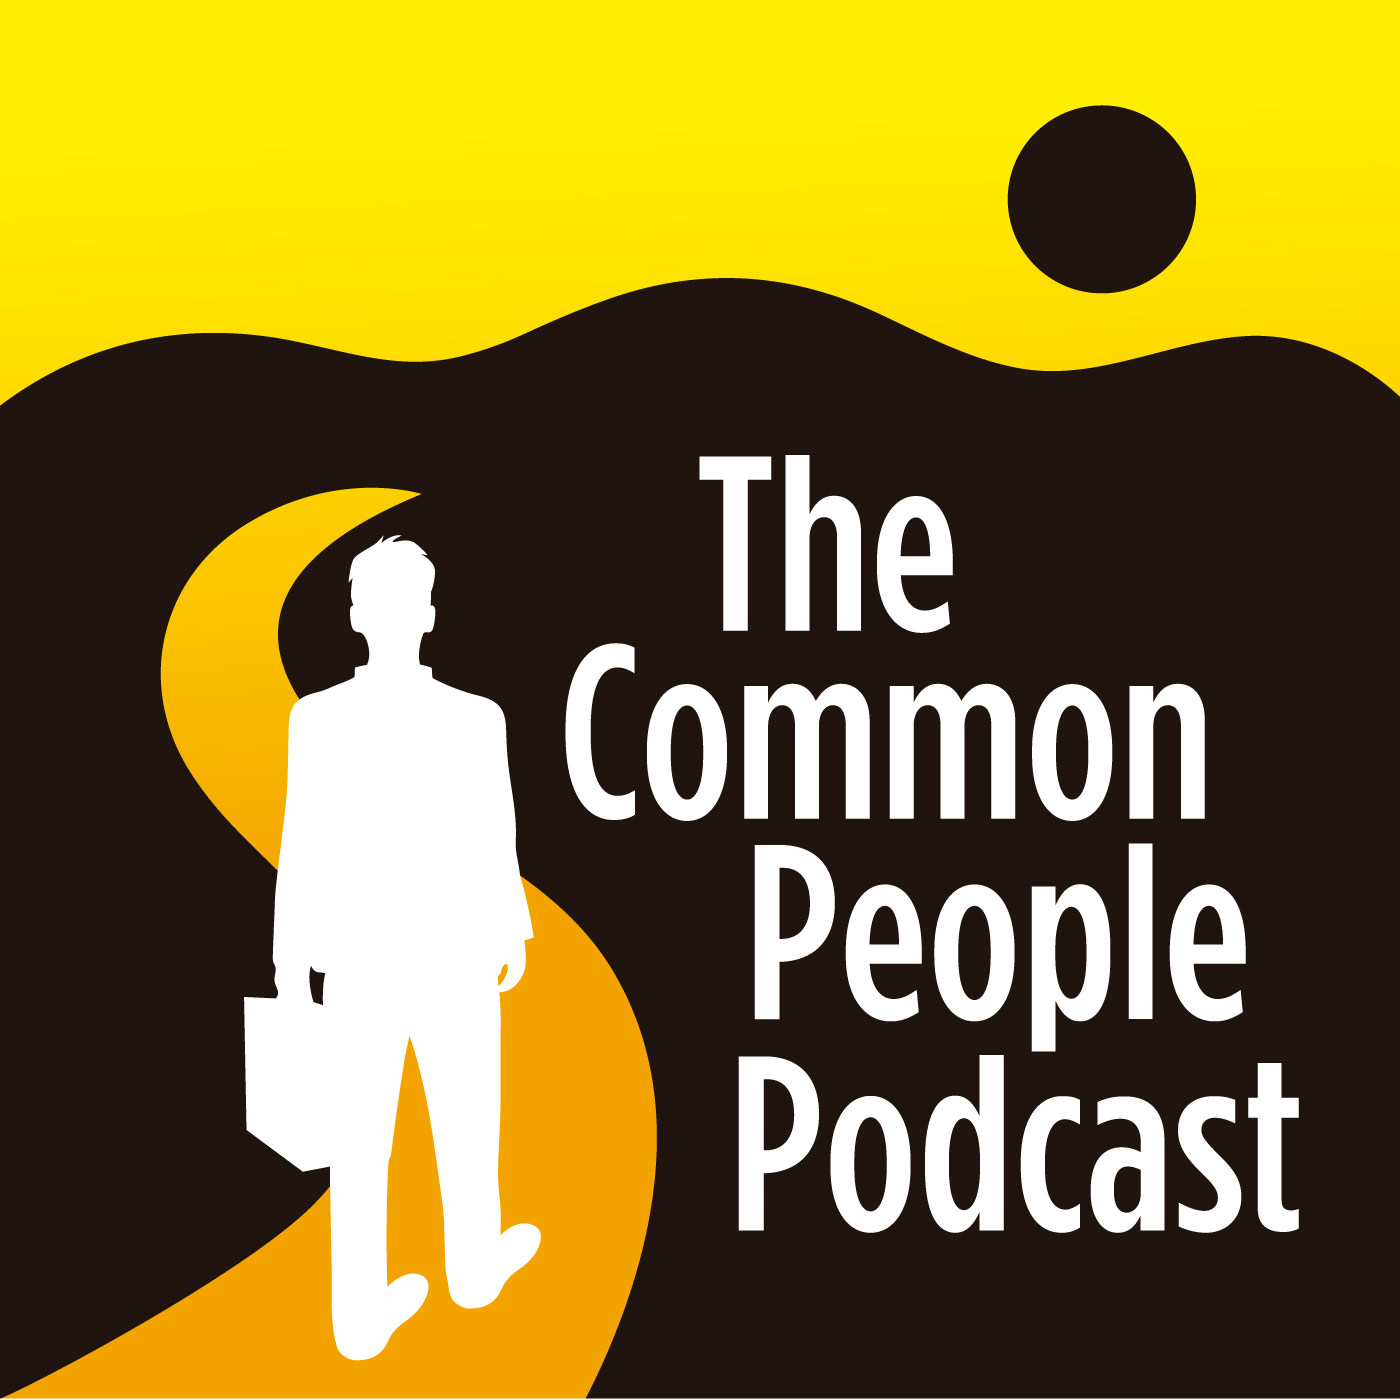 The Common People Podcast